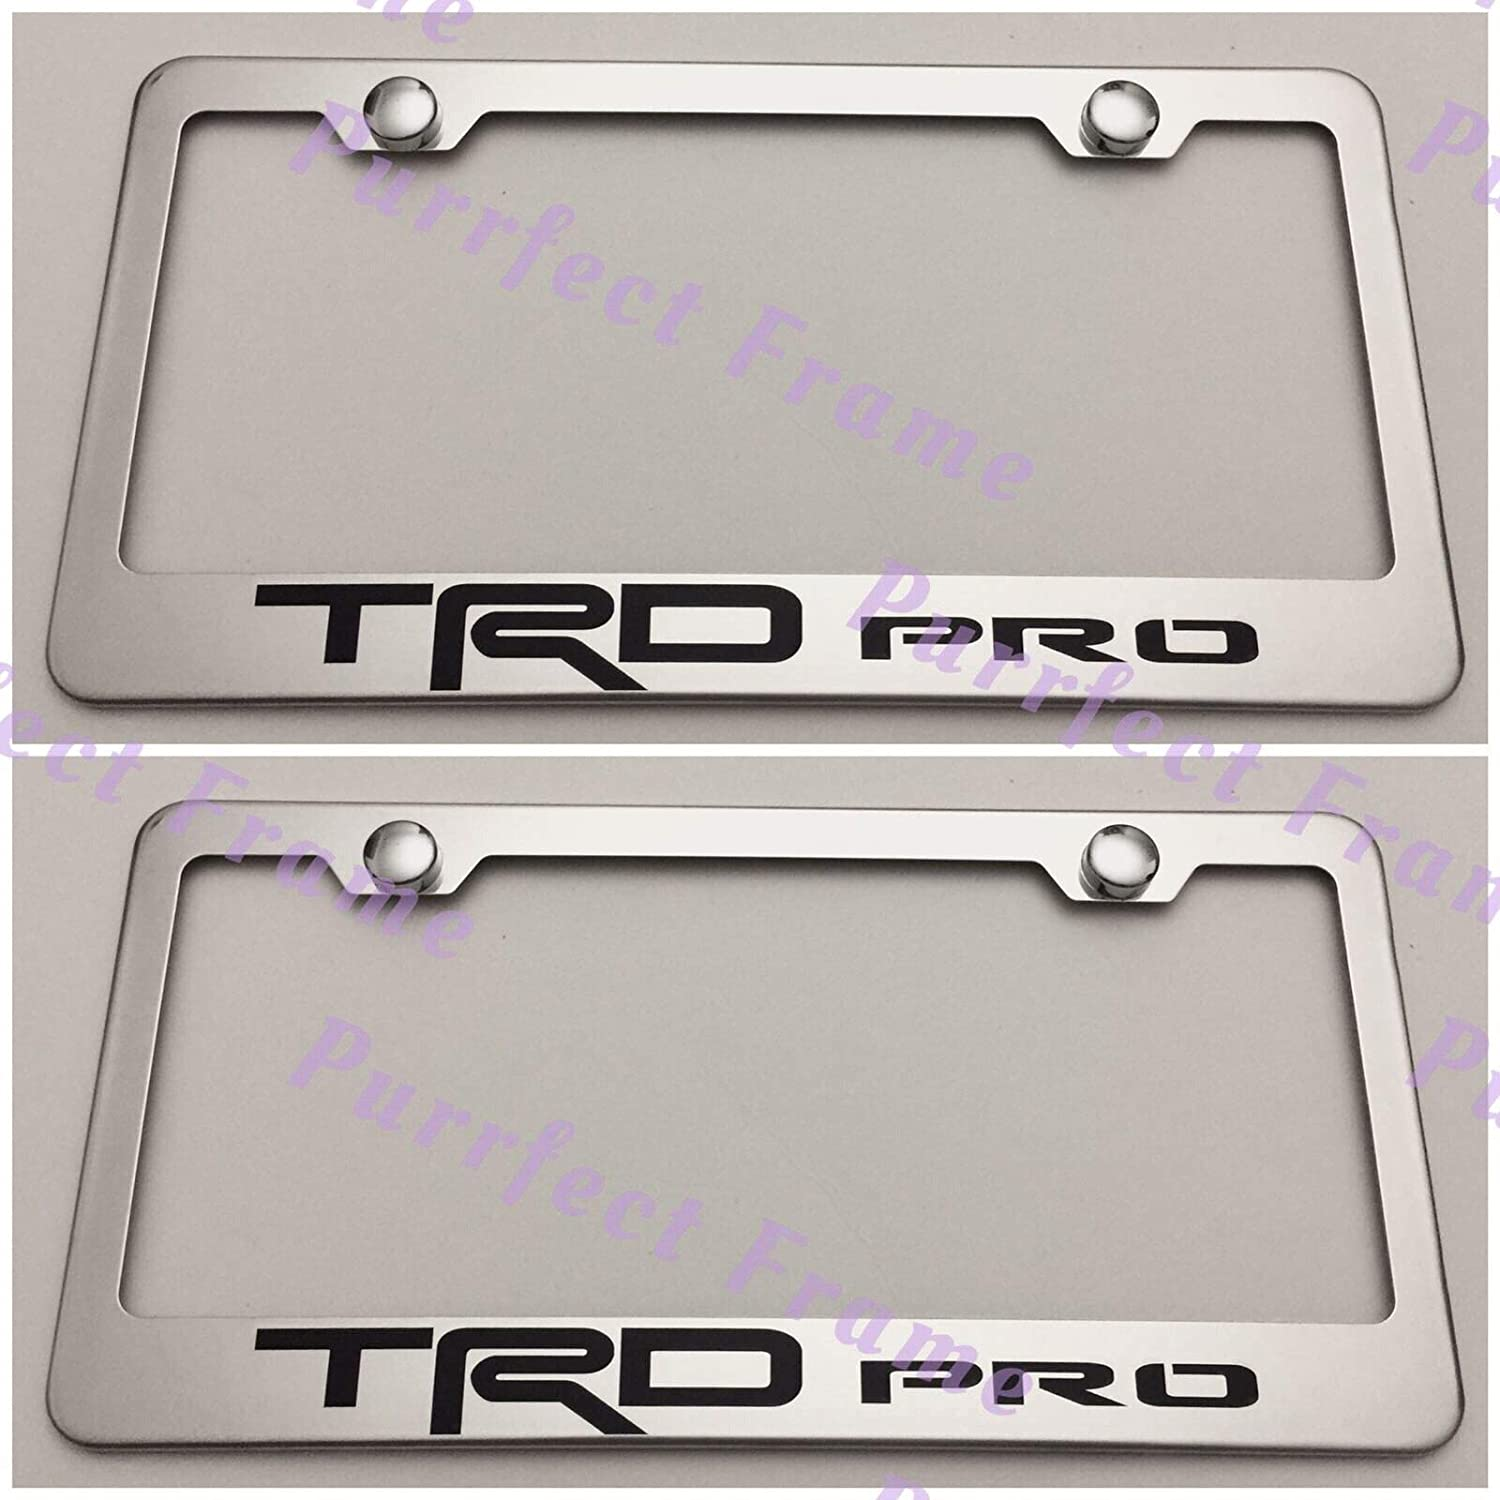 Toyota Tacoma Laser Etched License Plate Frame Stainless Steel Metal TRD